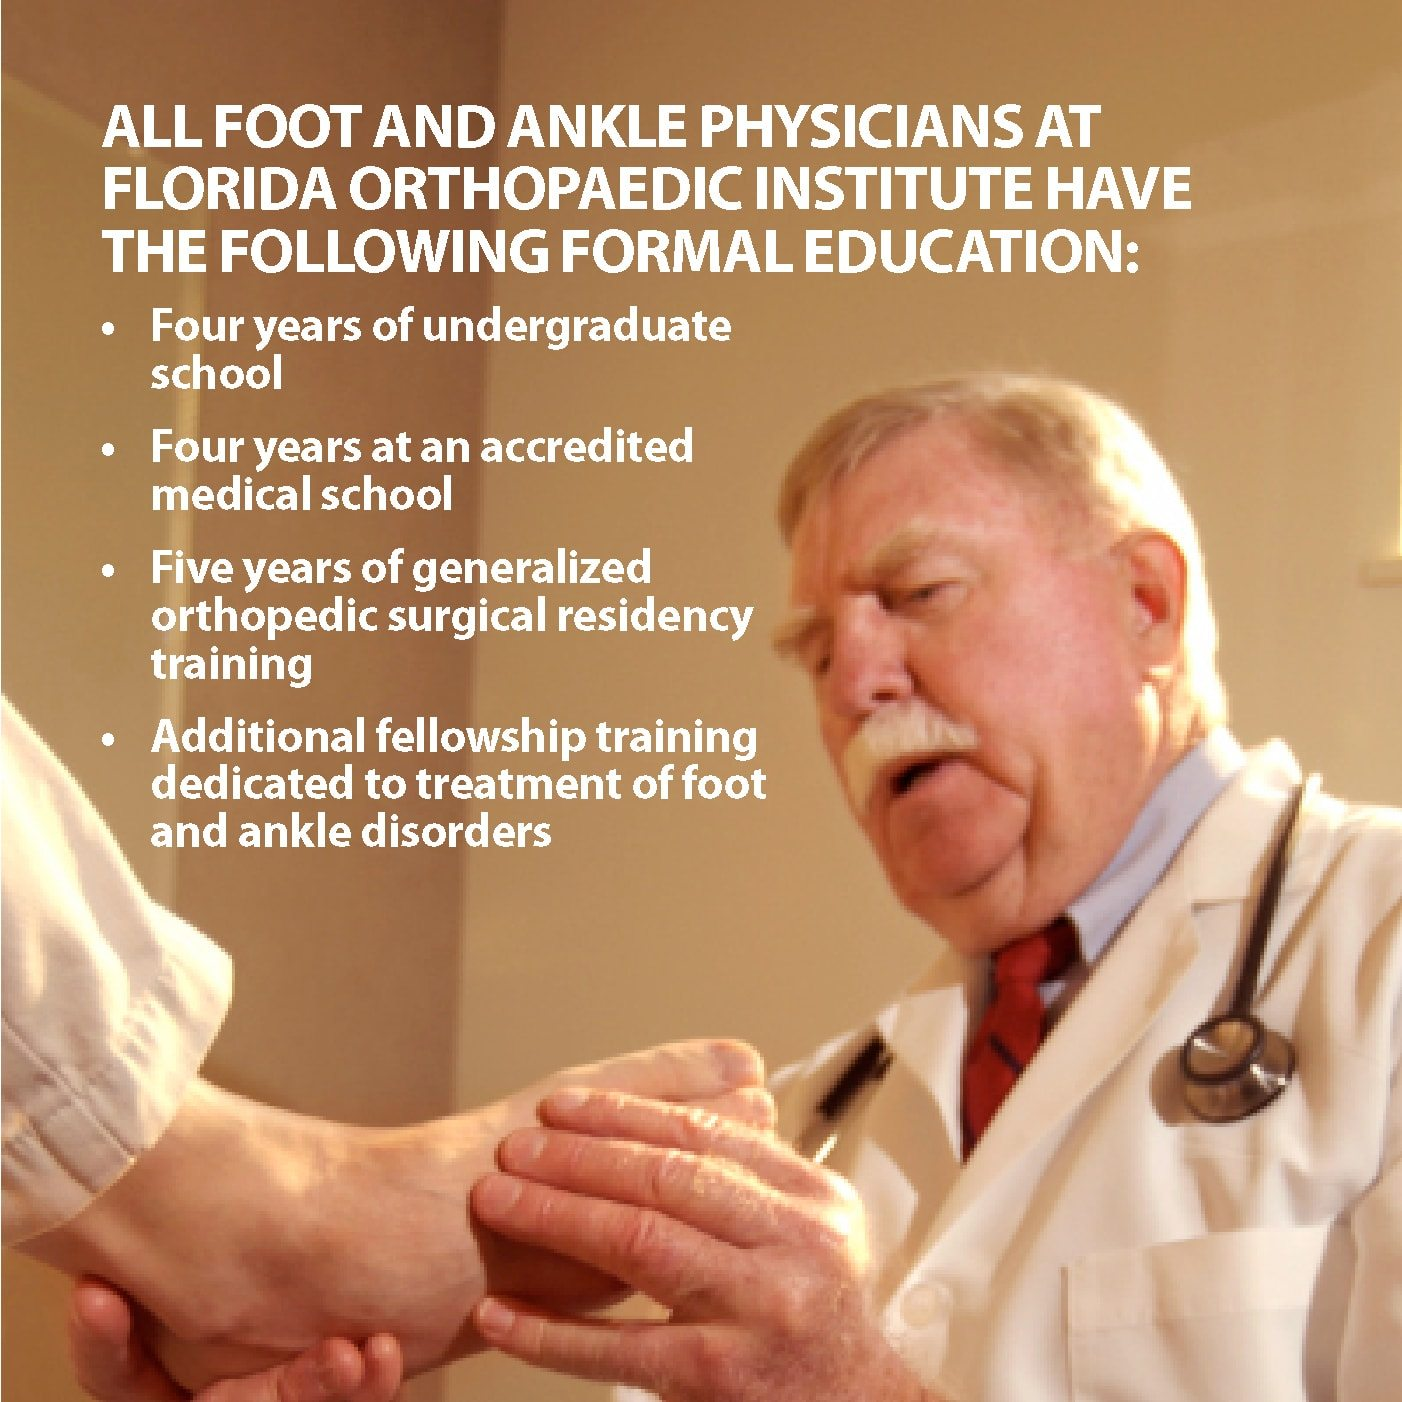 Podiatrist vs  Orthopaedist | Florida Orthopaedic Institute